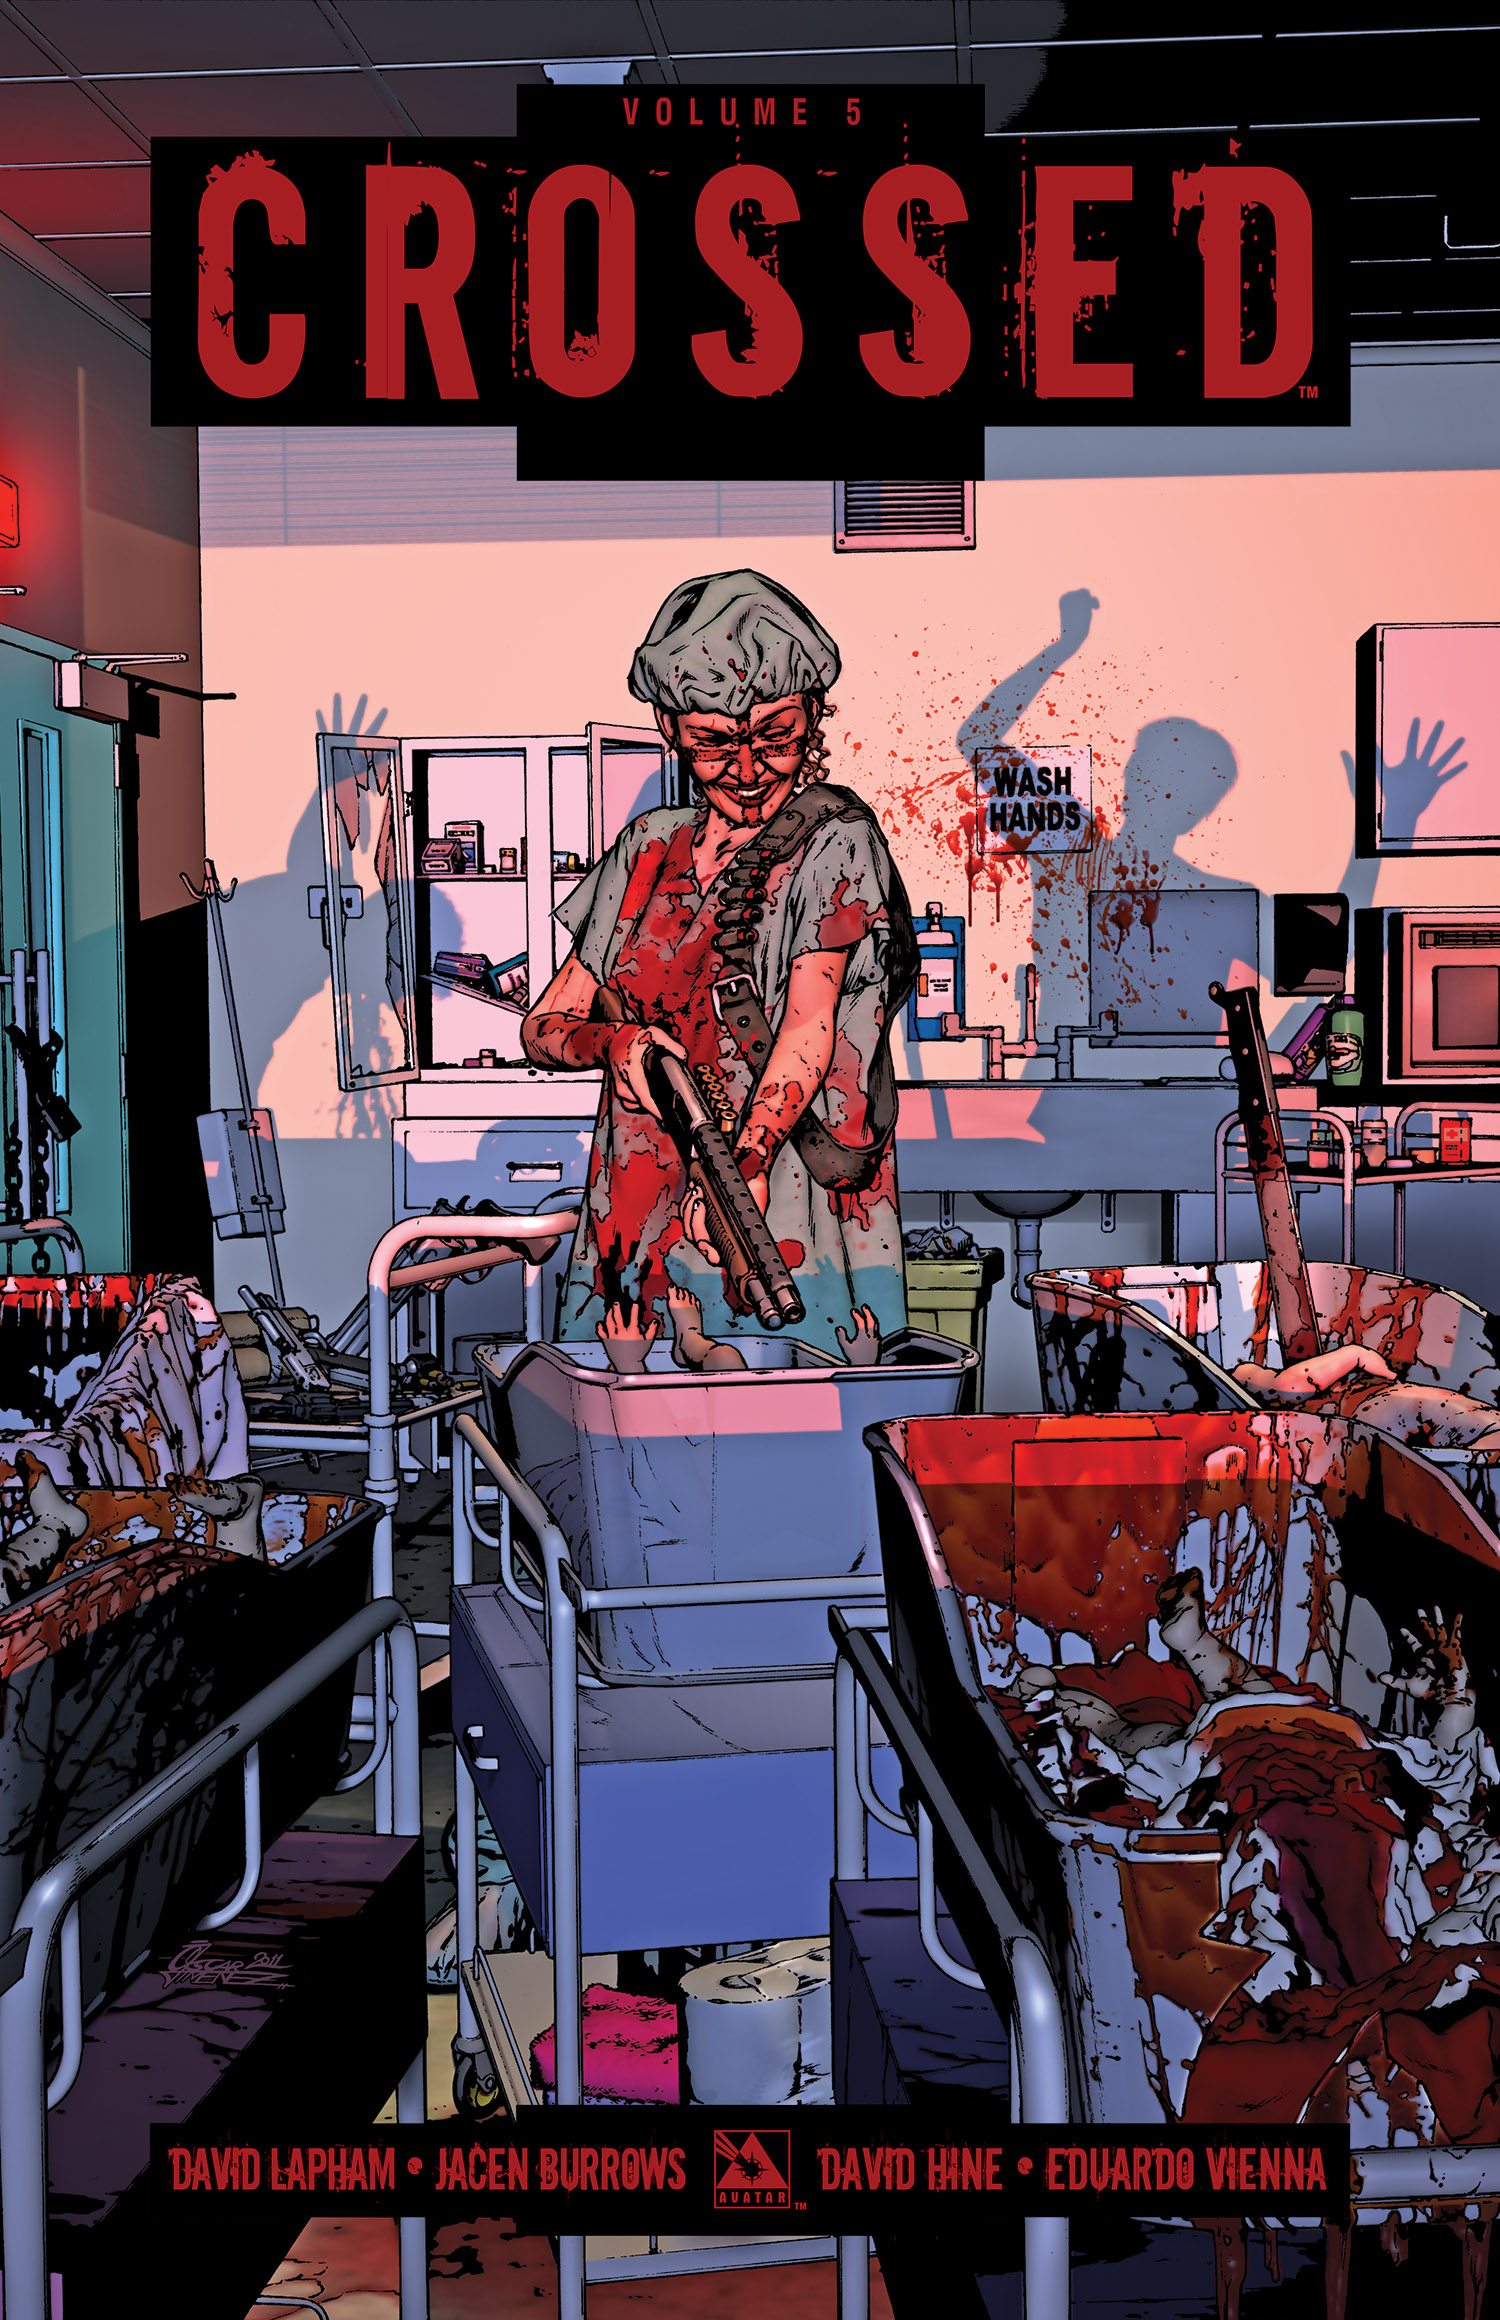 junk food for thought gets crossed with review avatar press